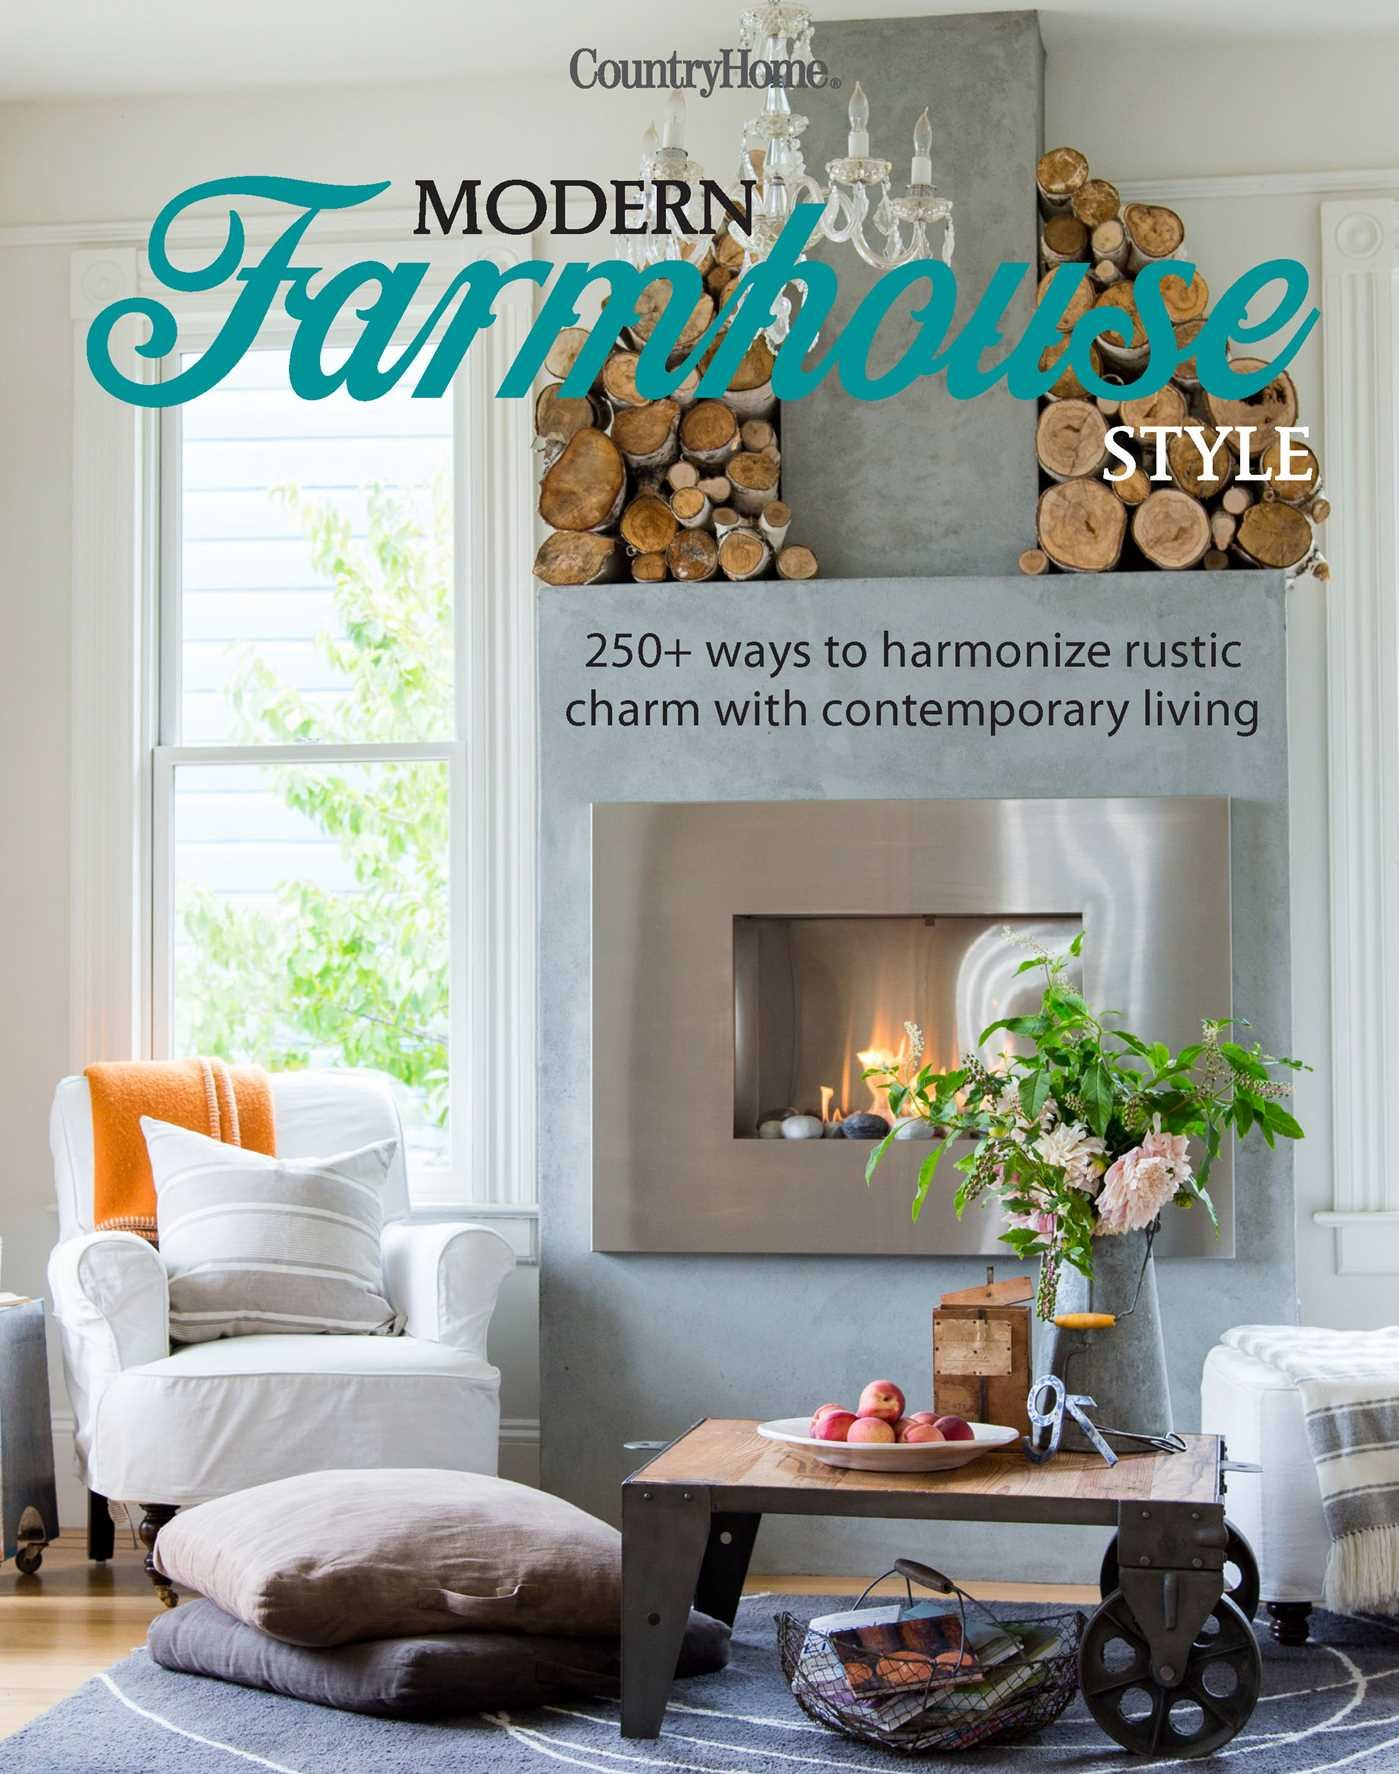 Modern Farmhouse Style 250 Ways To Harmonize Rustic Charm With Contemporary Living Country Home 9781681882956 Amazon Com Books